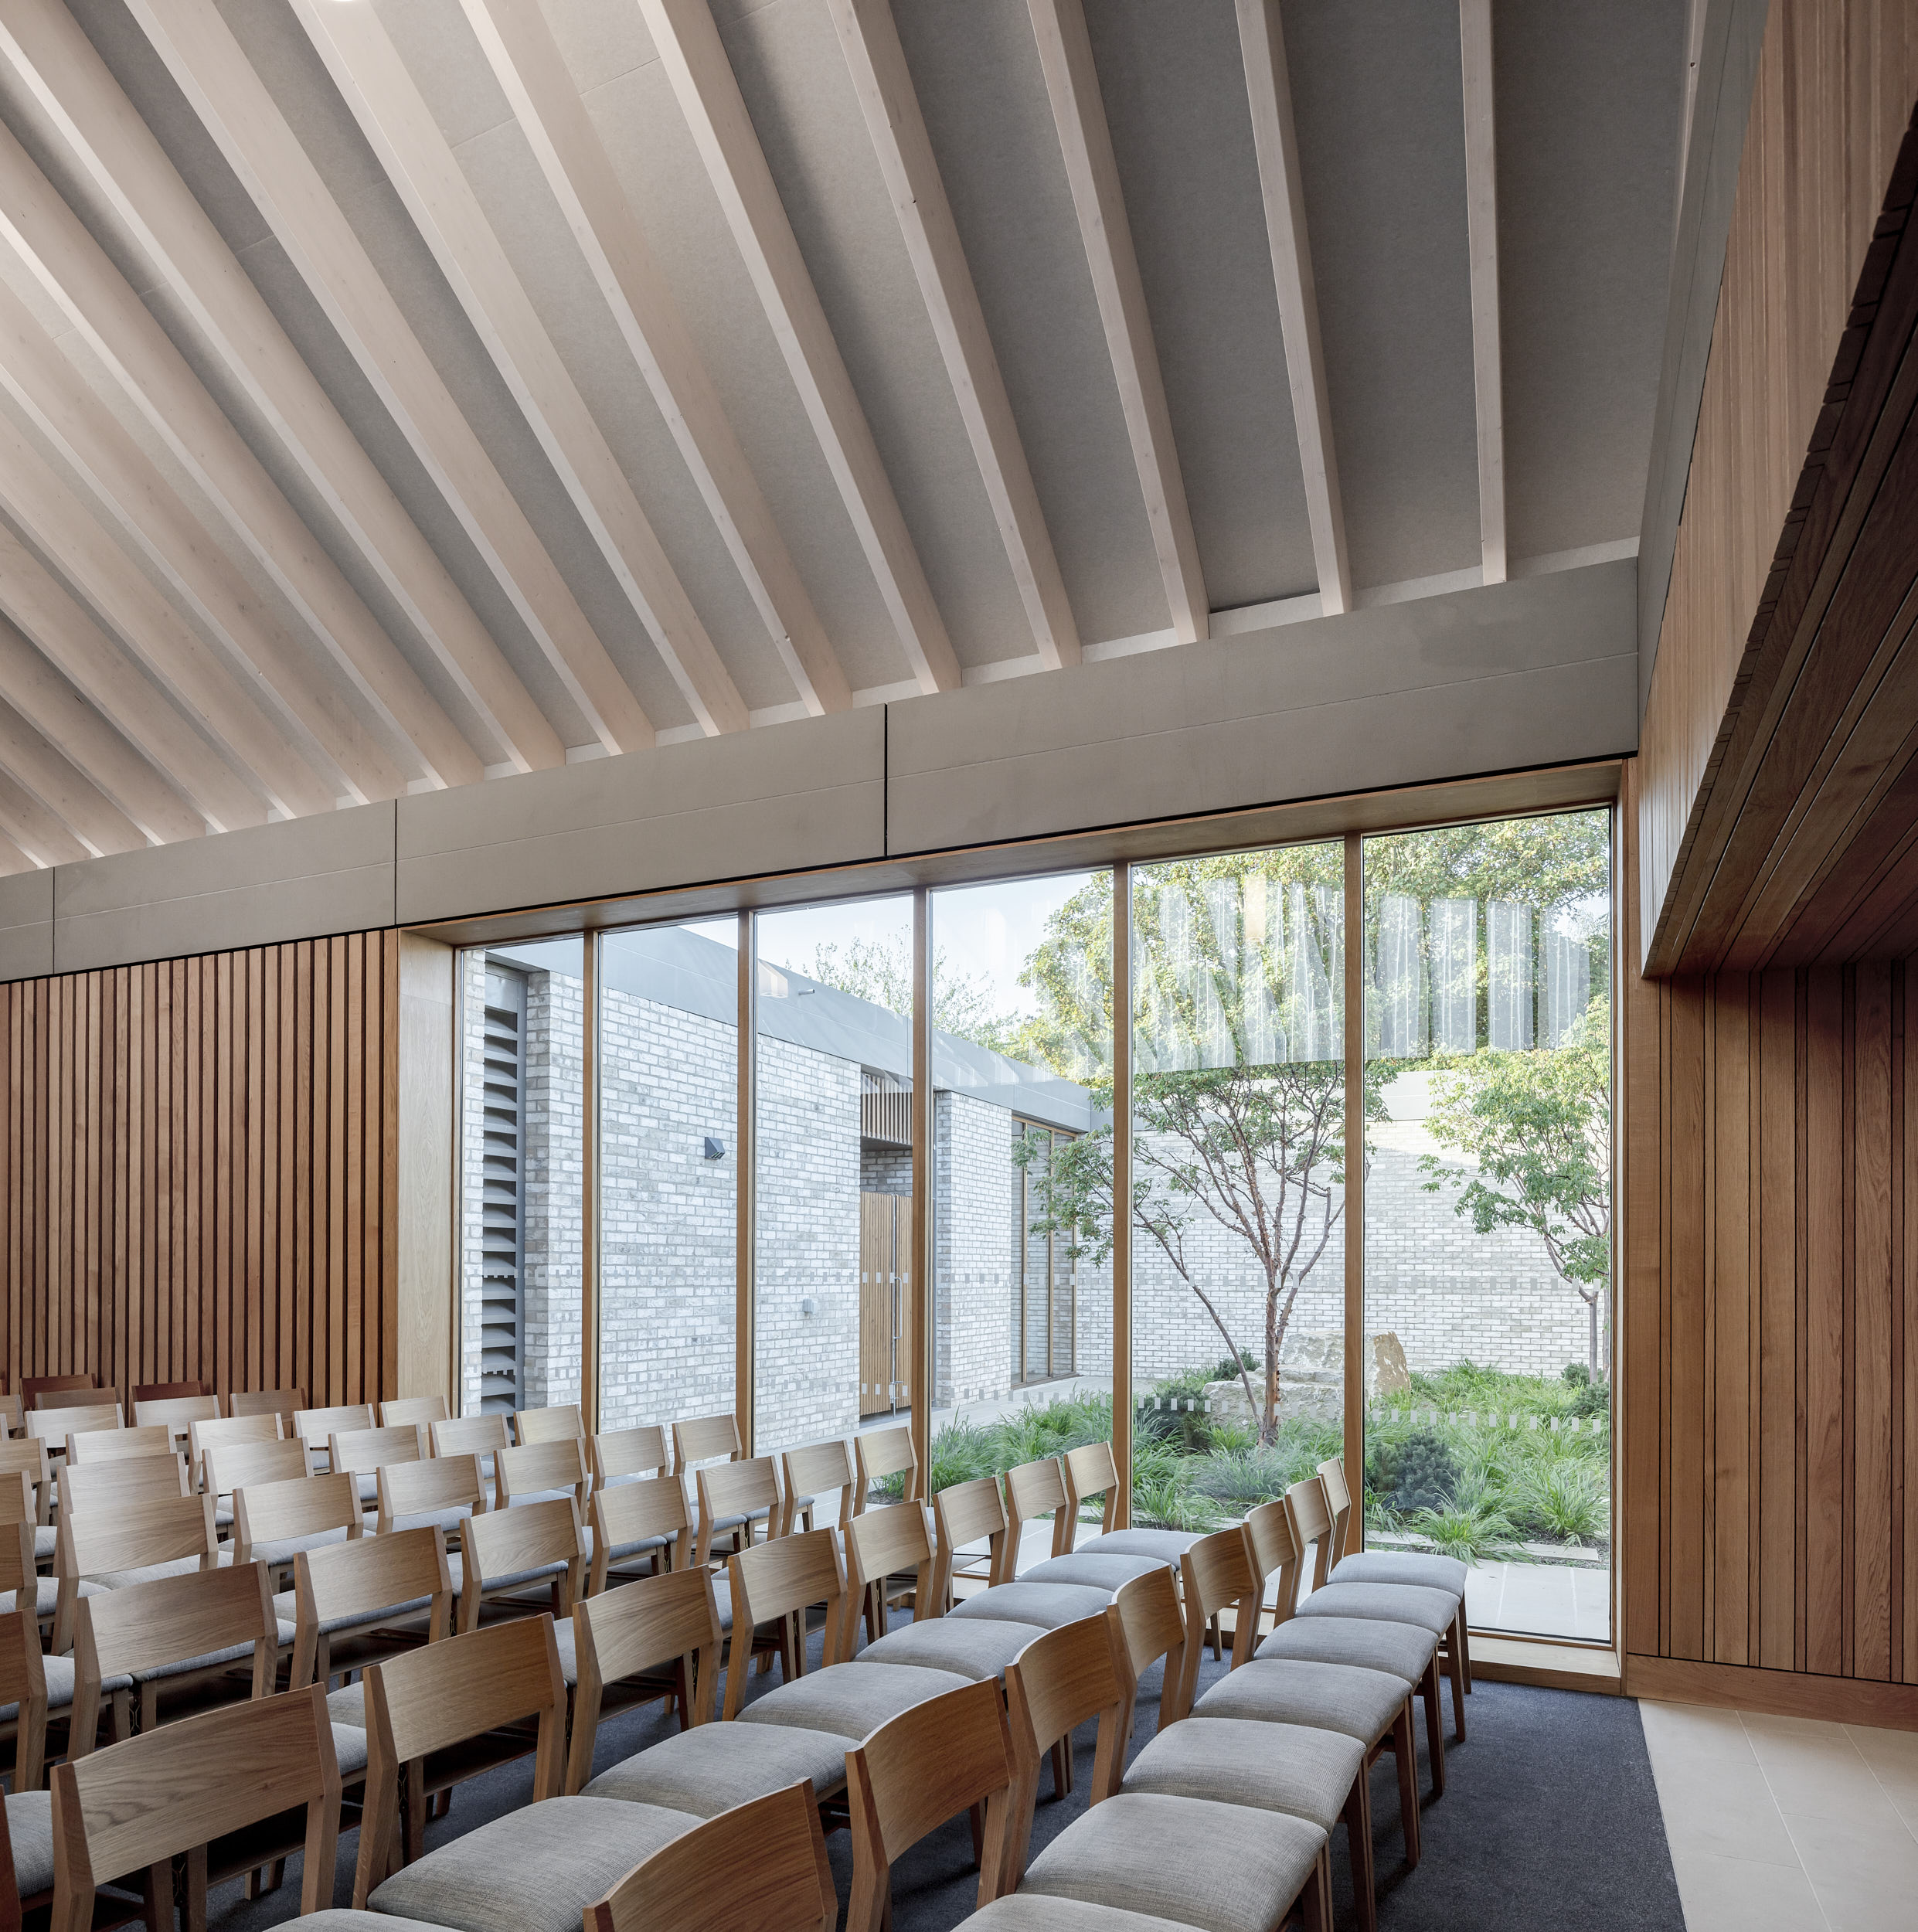 The new chapel features extensive glazing creating intimate connections to the private courtyards.